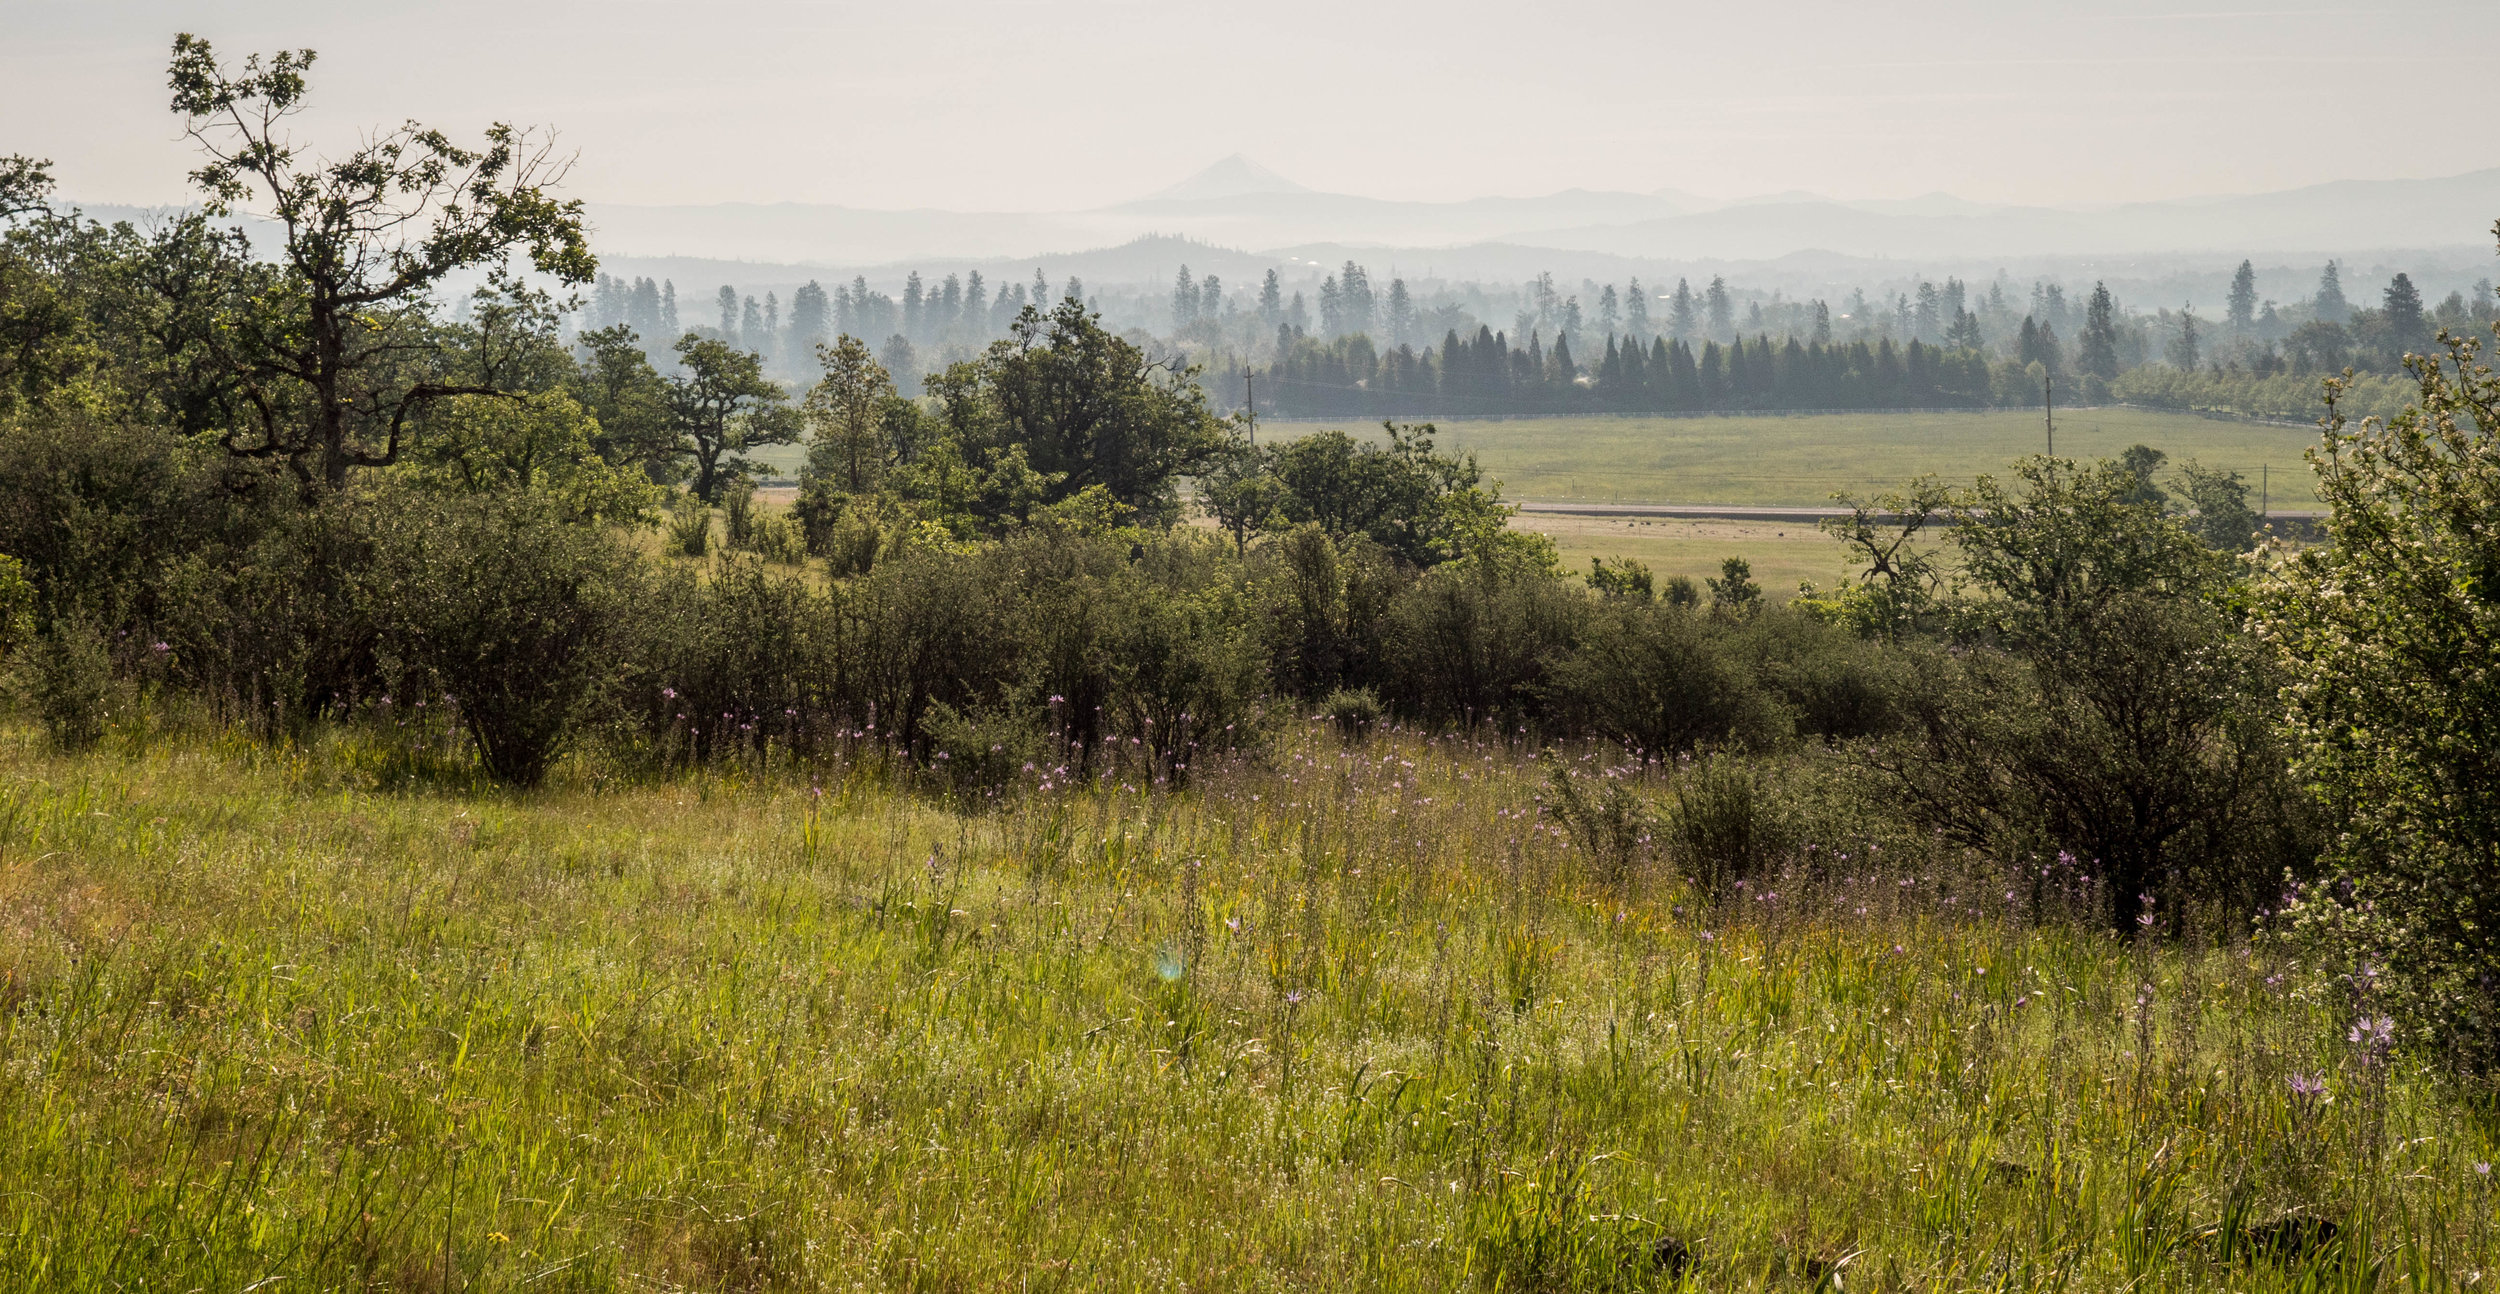 Mt. McLoughlin in the hazy distance; there was a wildfire the day we went. It's much easier to see in person.